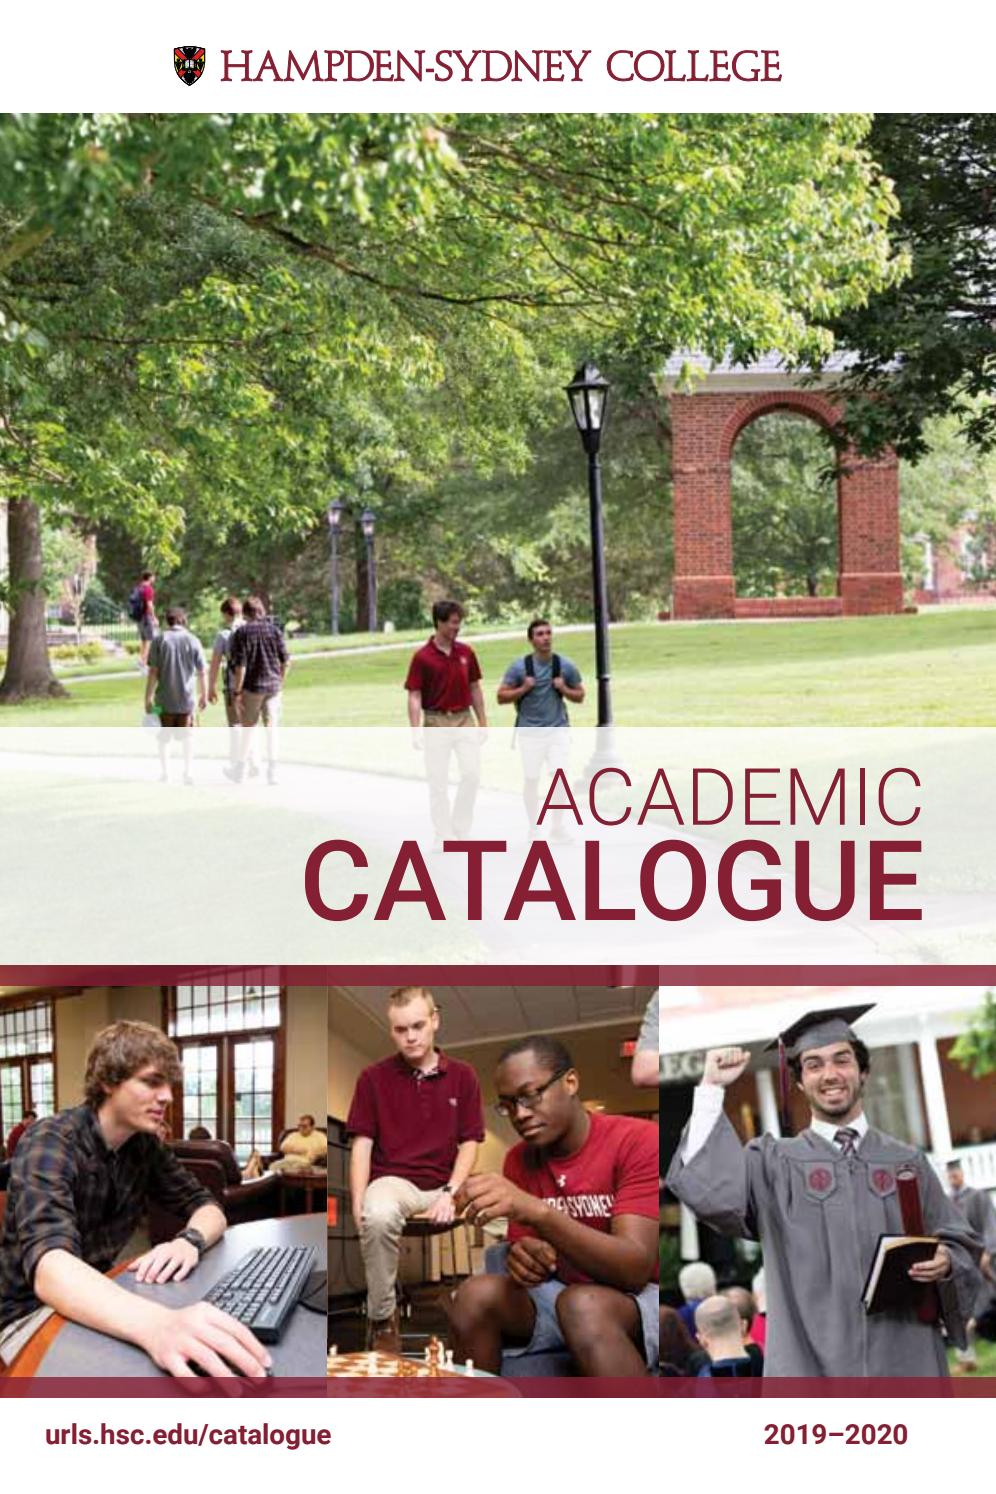 Academic Catalogue, 2019-20 by Hampden-Sydney College - issuu